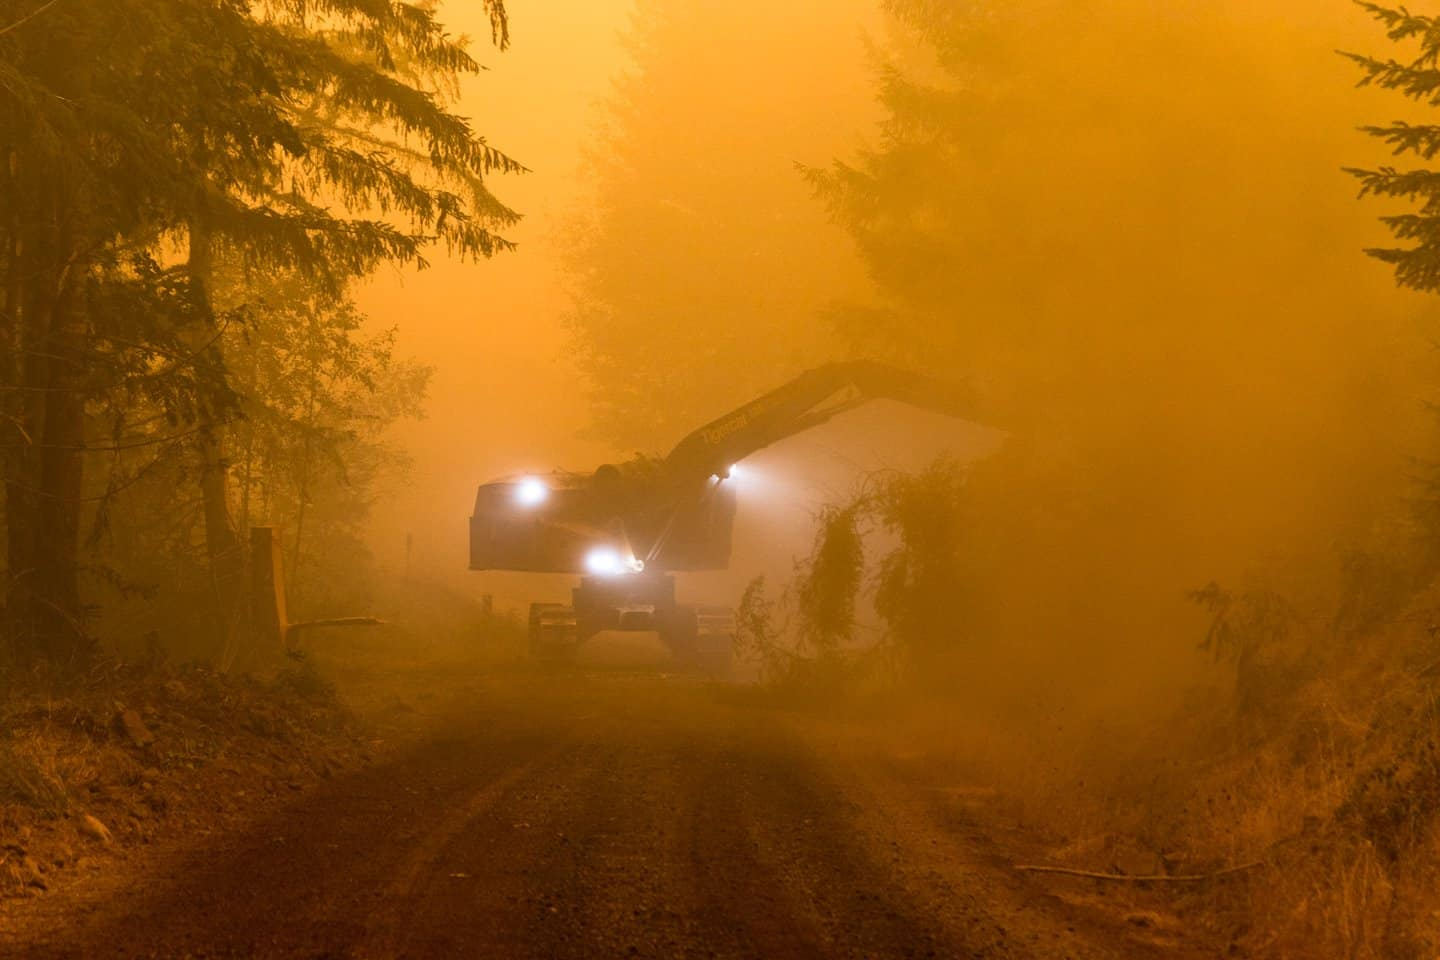 Clean up crews clear emergency evacuation roads following wildfires in the Pacific Northwest.